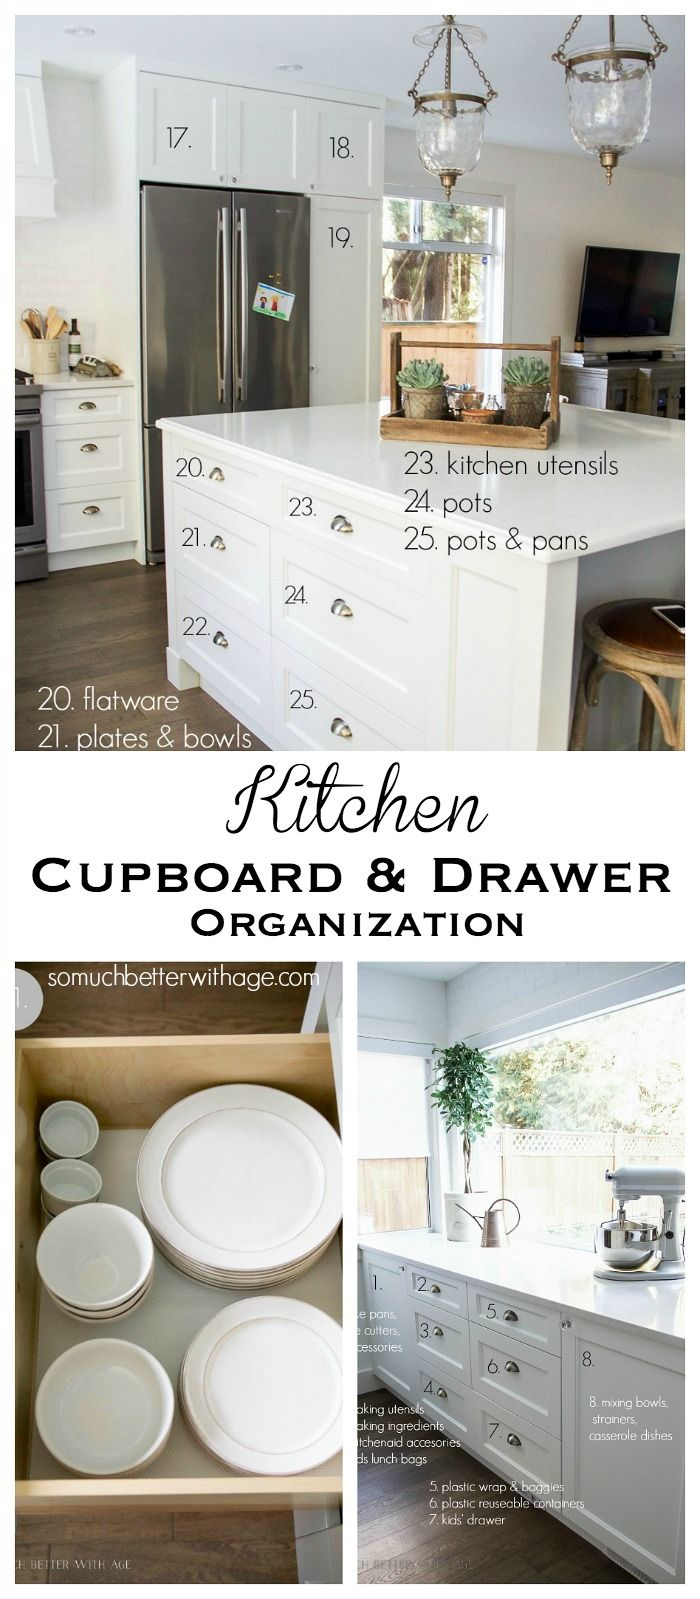 Kitchen Cupboard and Drawer Organization | Kitchen cupboards ...